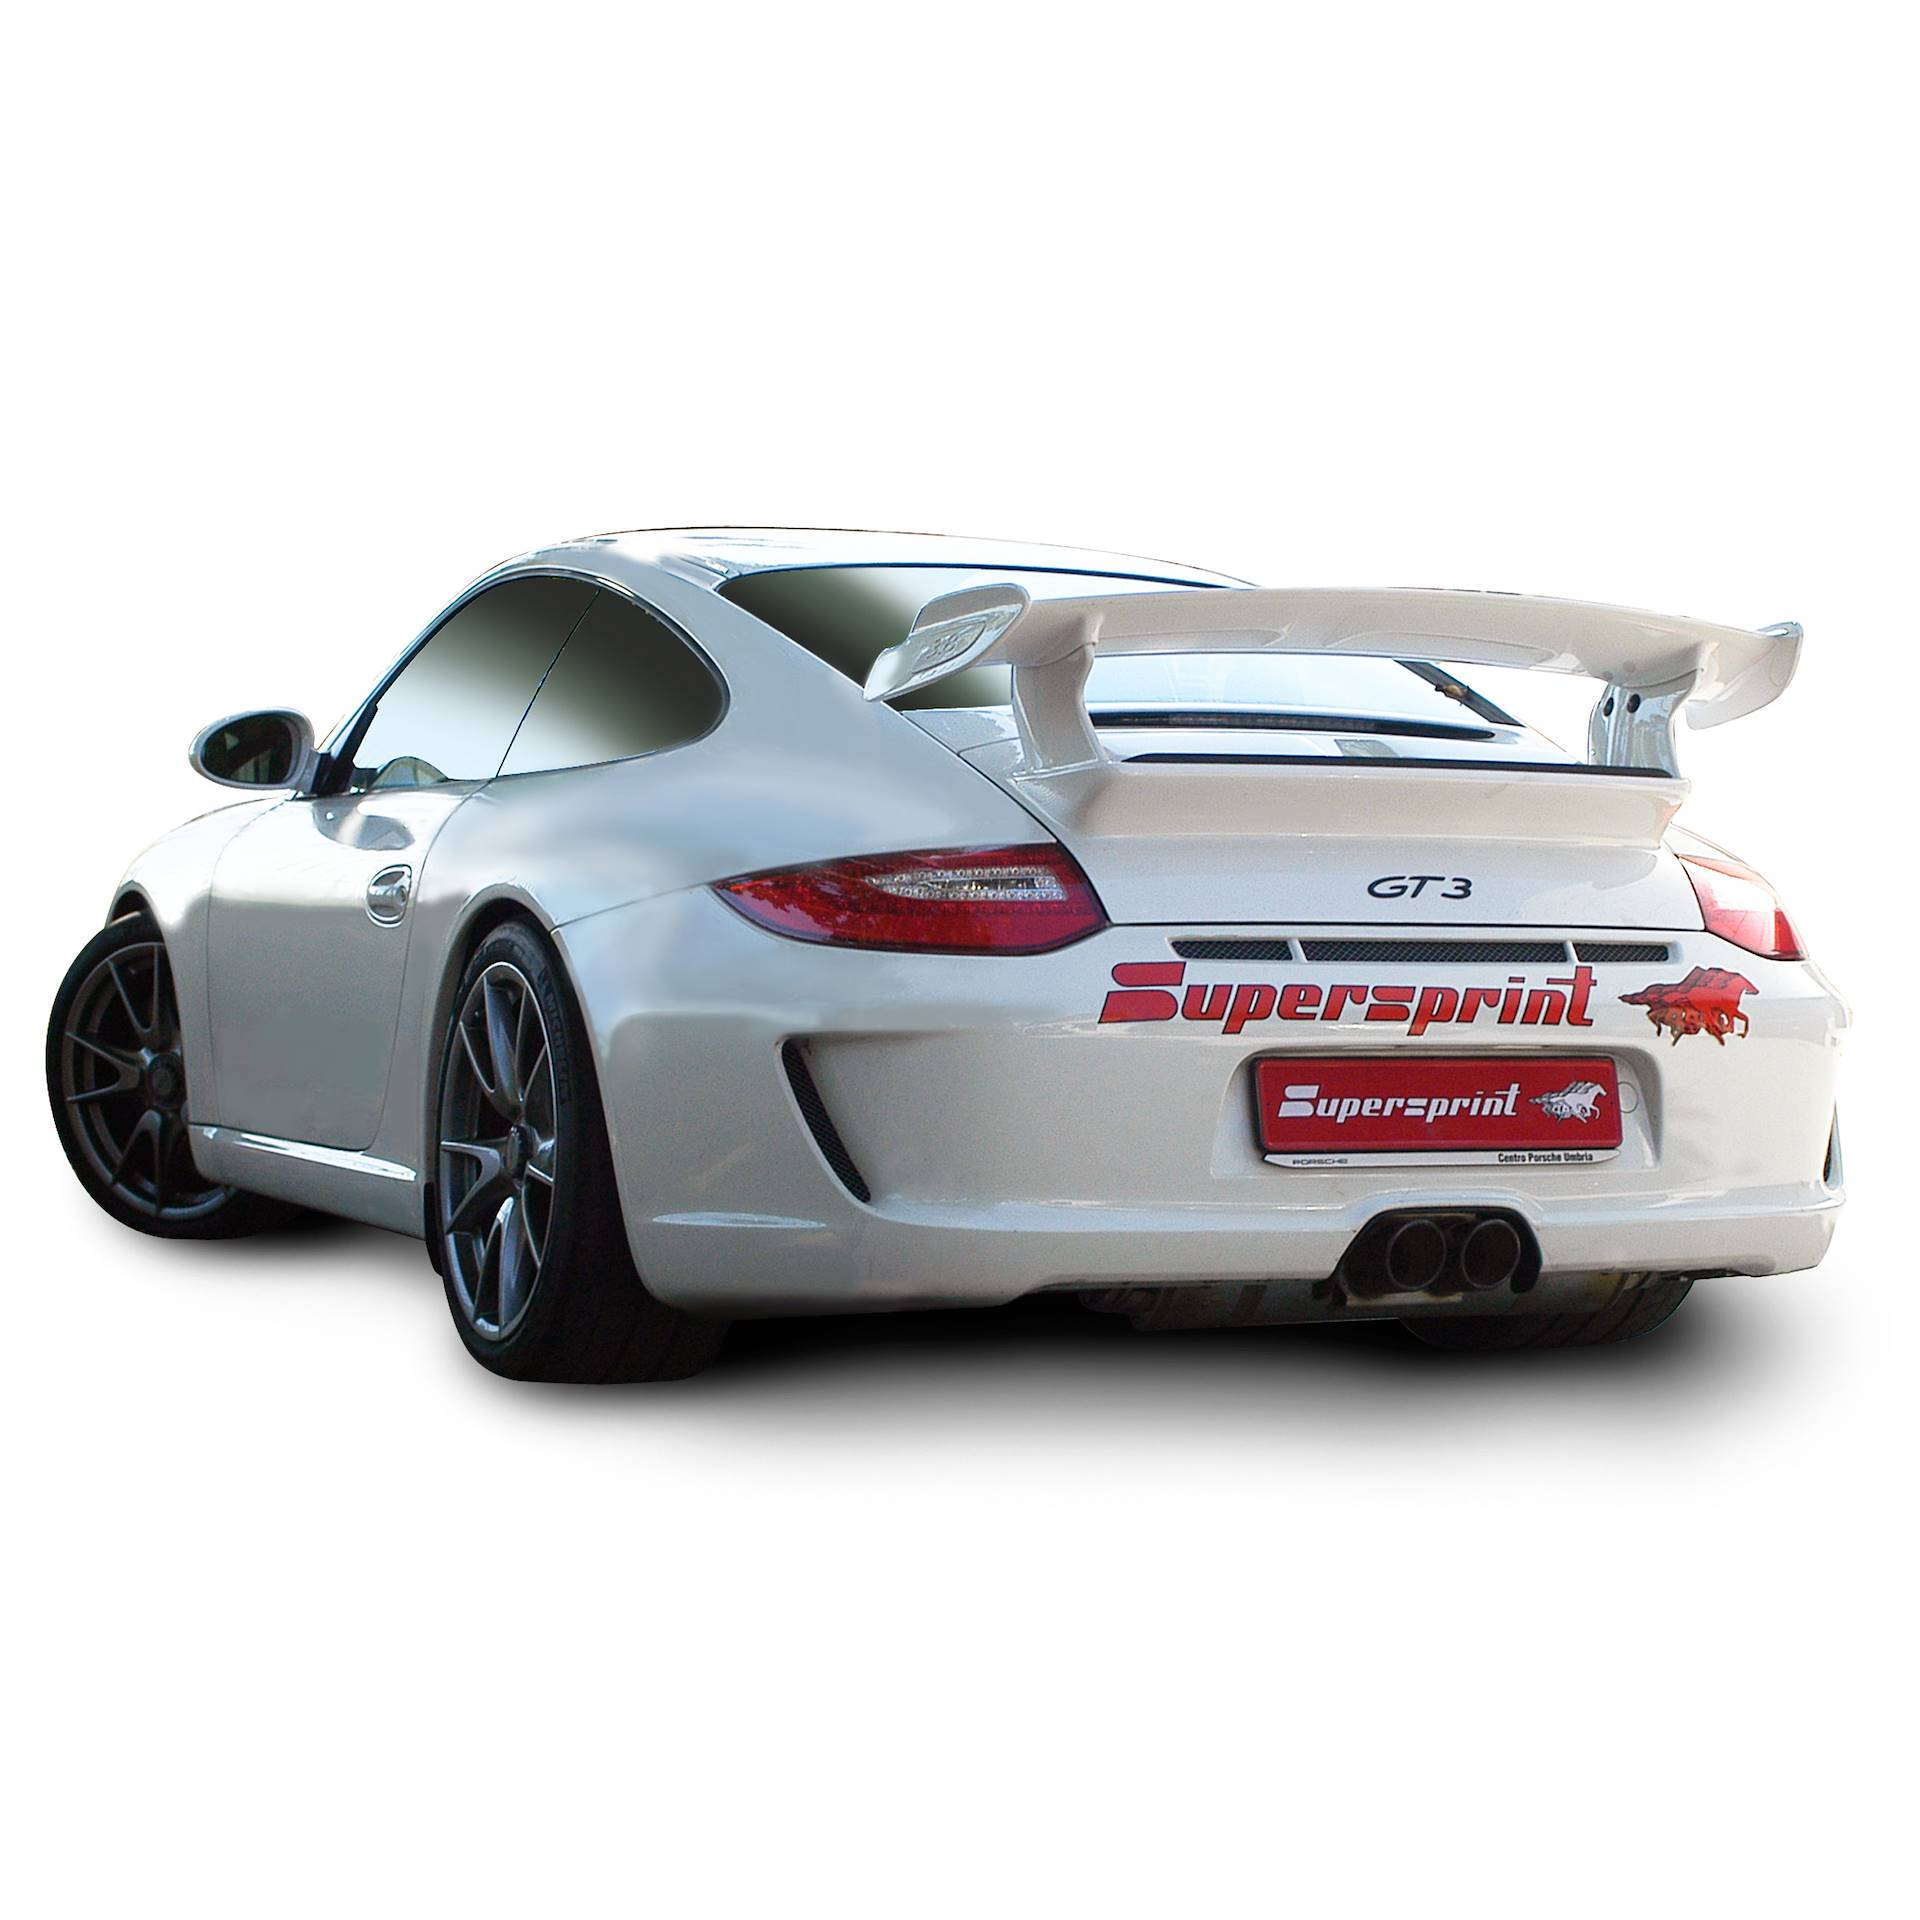 Performance Sport Exhaust For Porsche 997 2 Gt3 Porsche